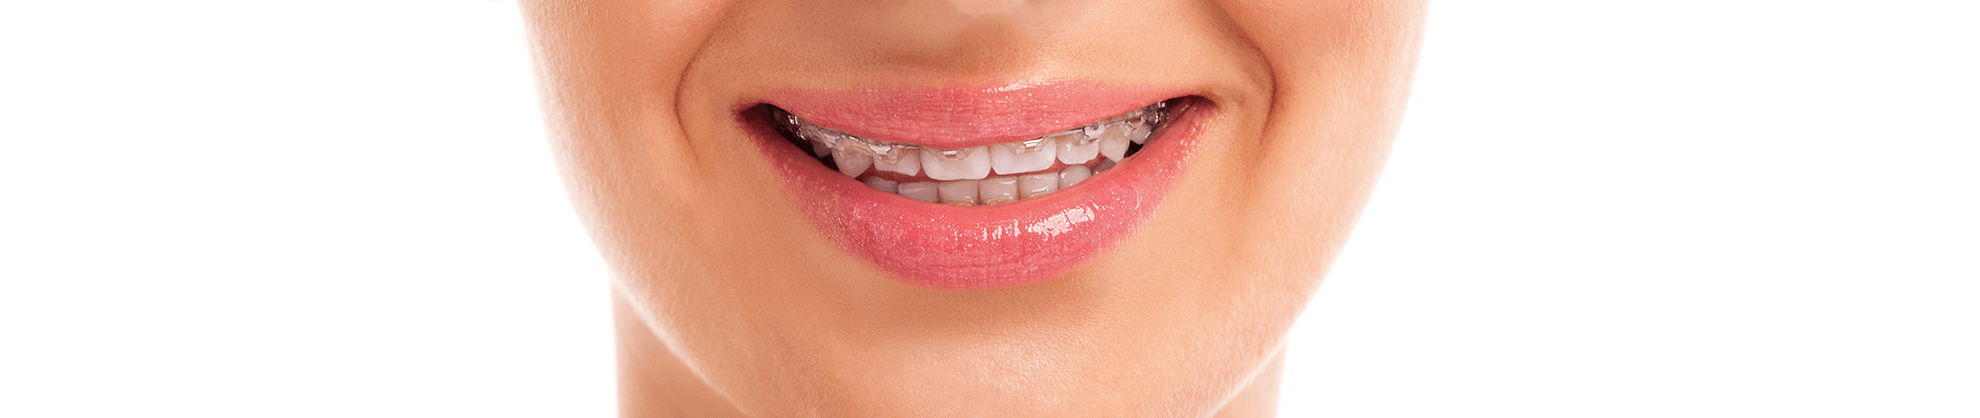 Orthodontics in Midland, TX